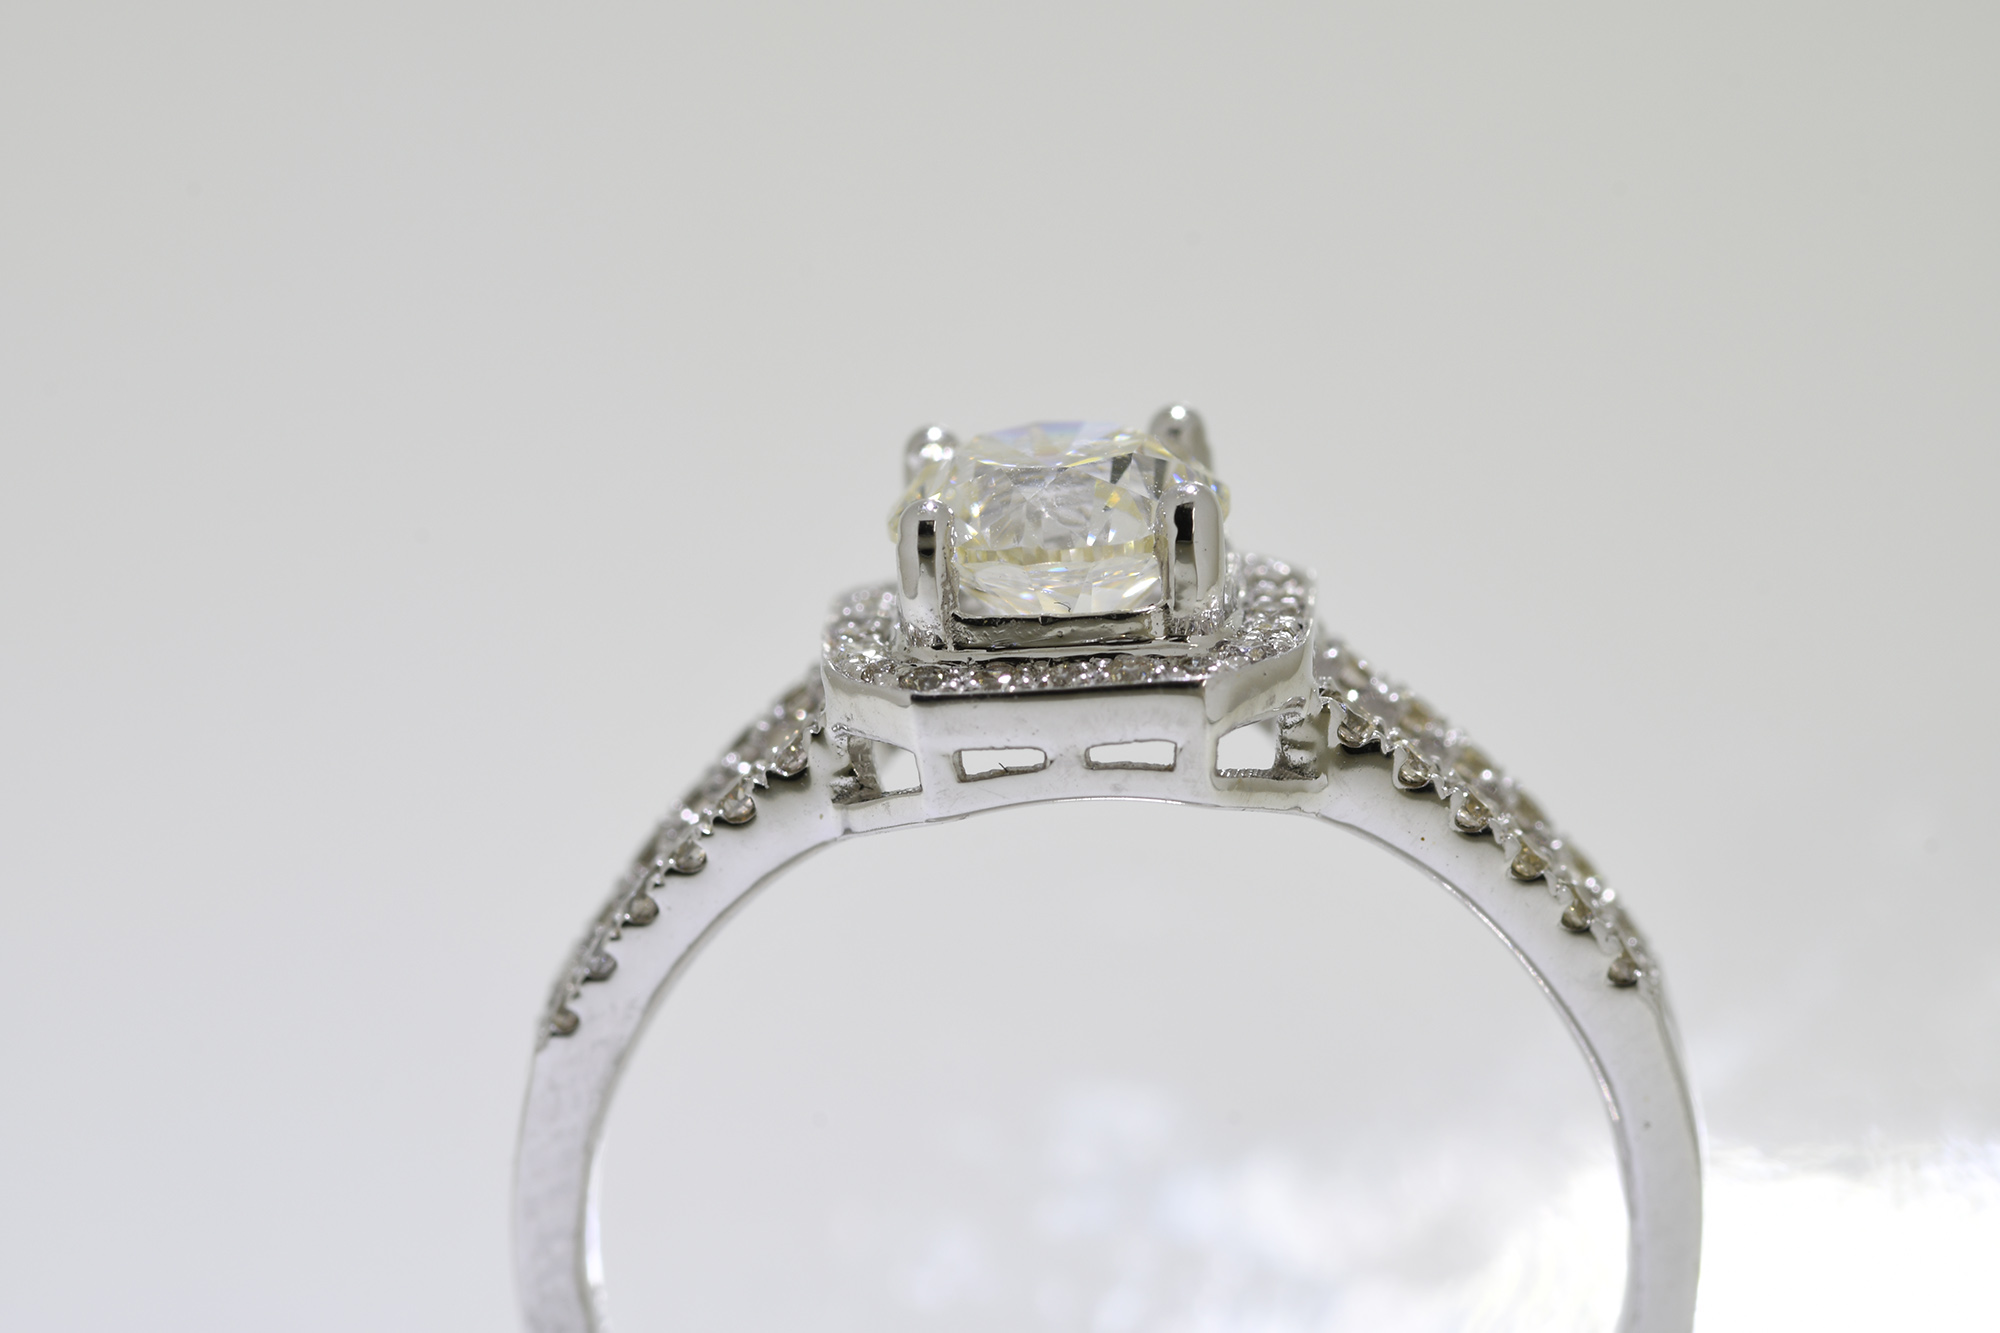 Solitaire Diamond Ring - Image 2 of 4